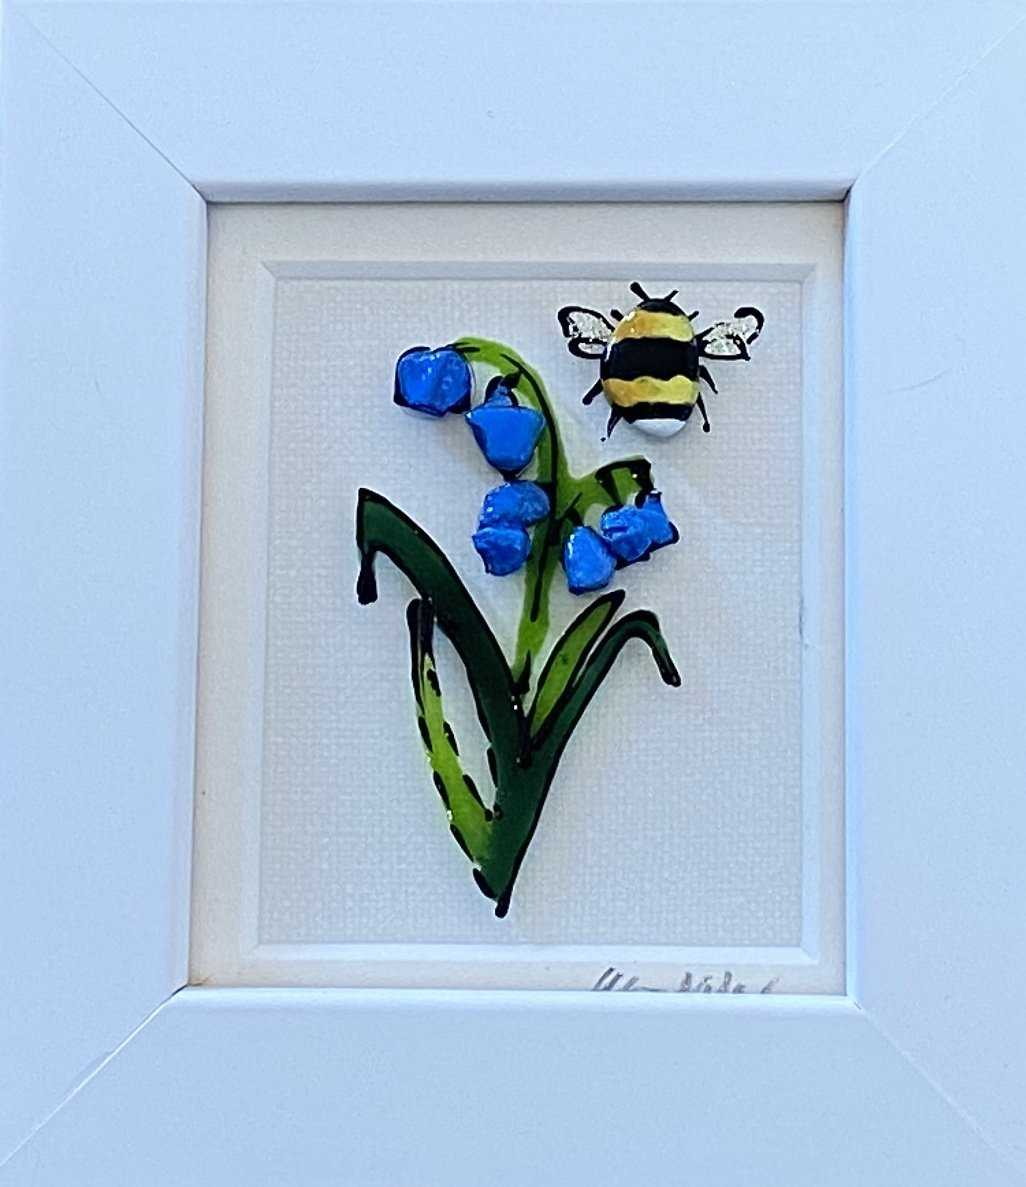 Small Bluebell Bee Art Title - Online Art Shop Brighton, UK